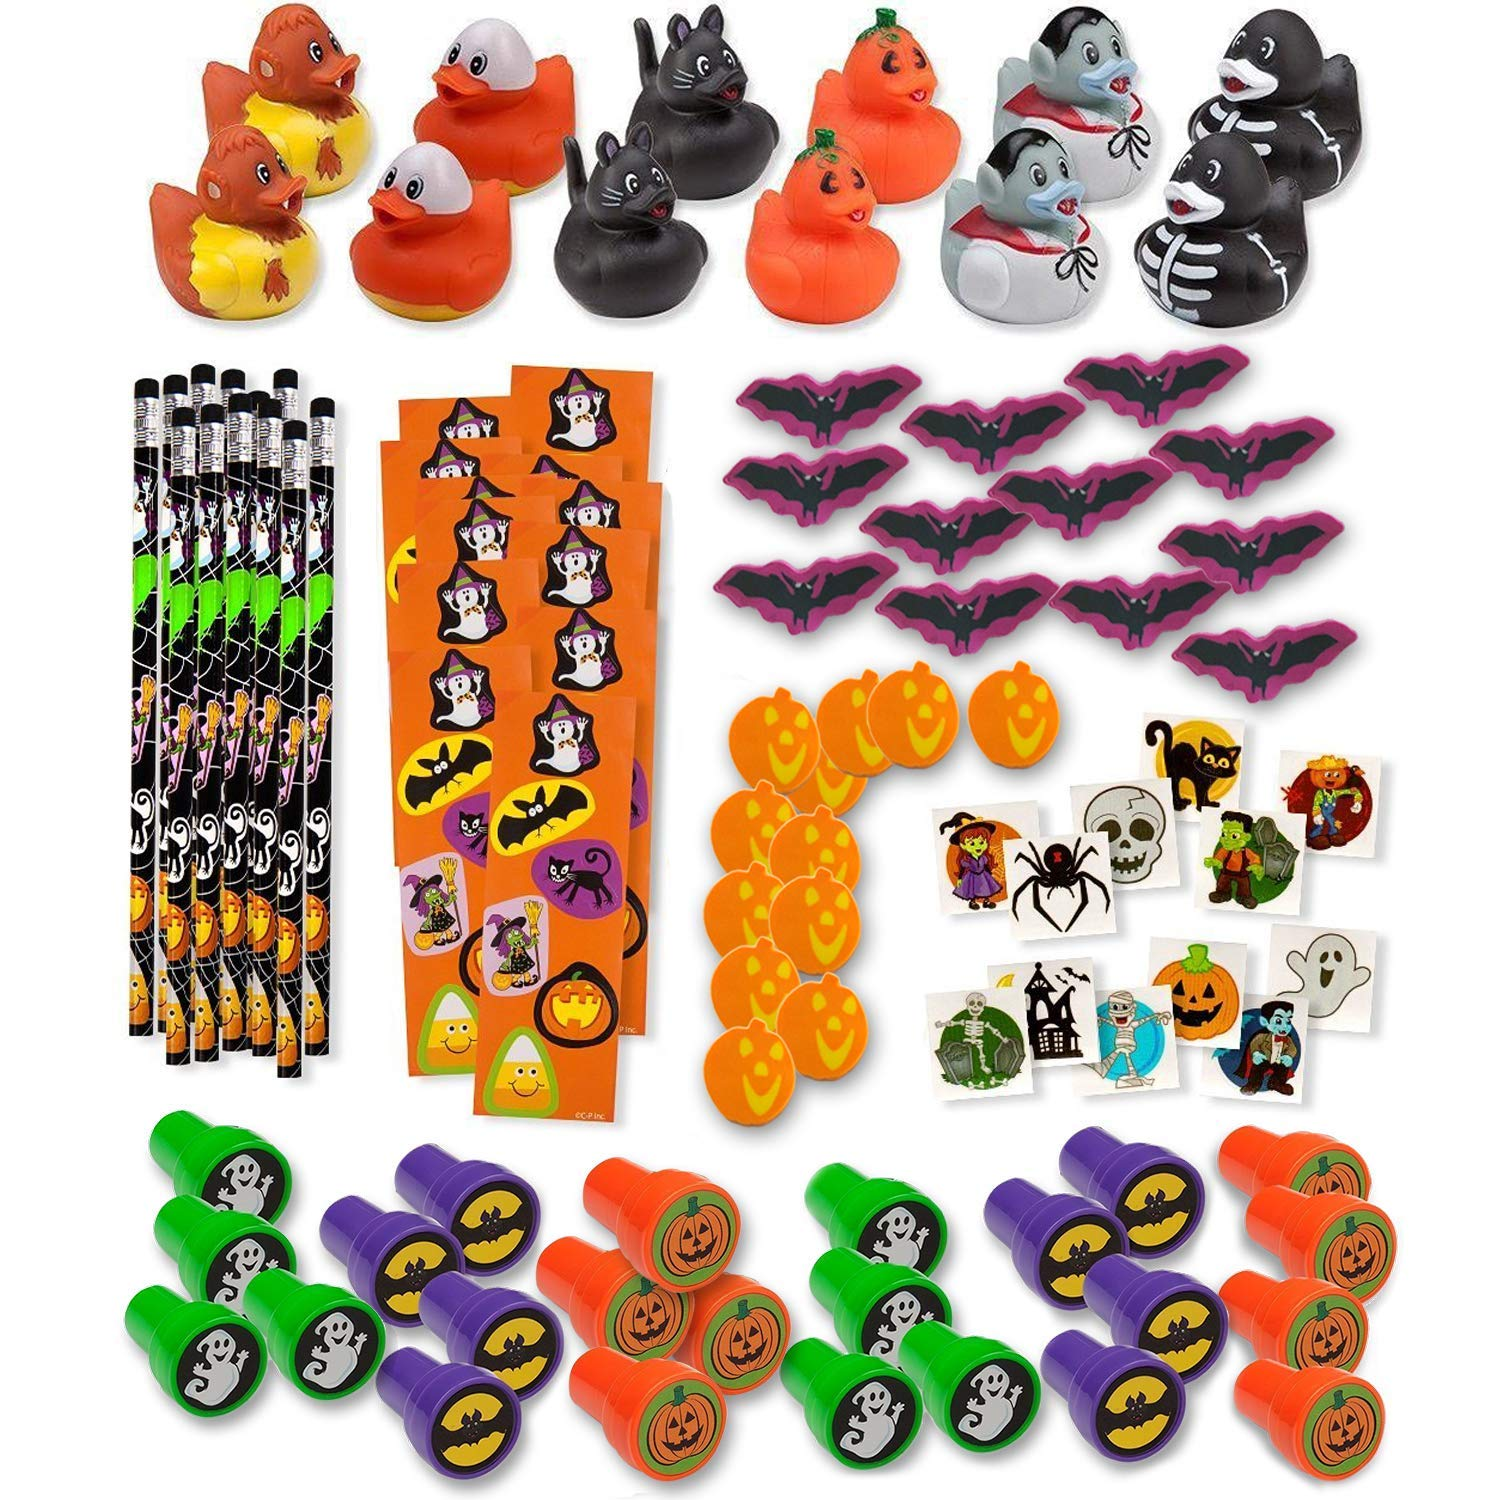 Buy Bulk Toys Party Favors For Kids Party 100 Pc Easter